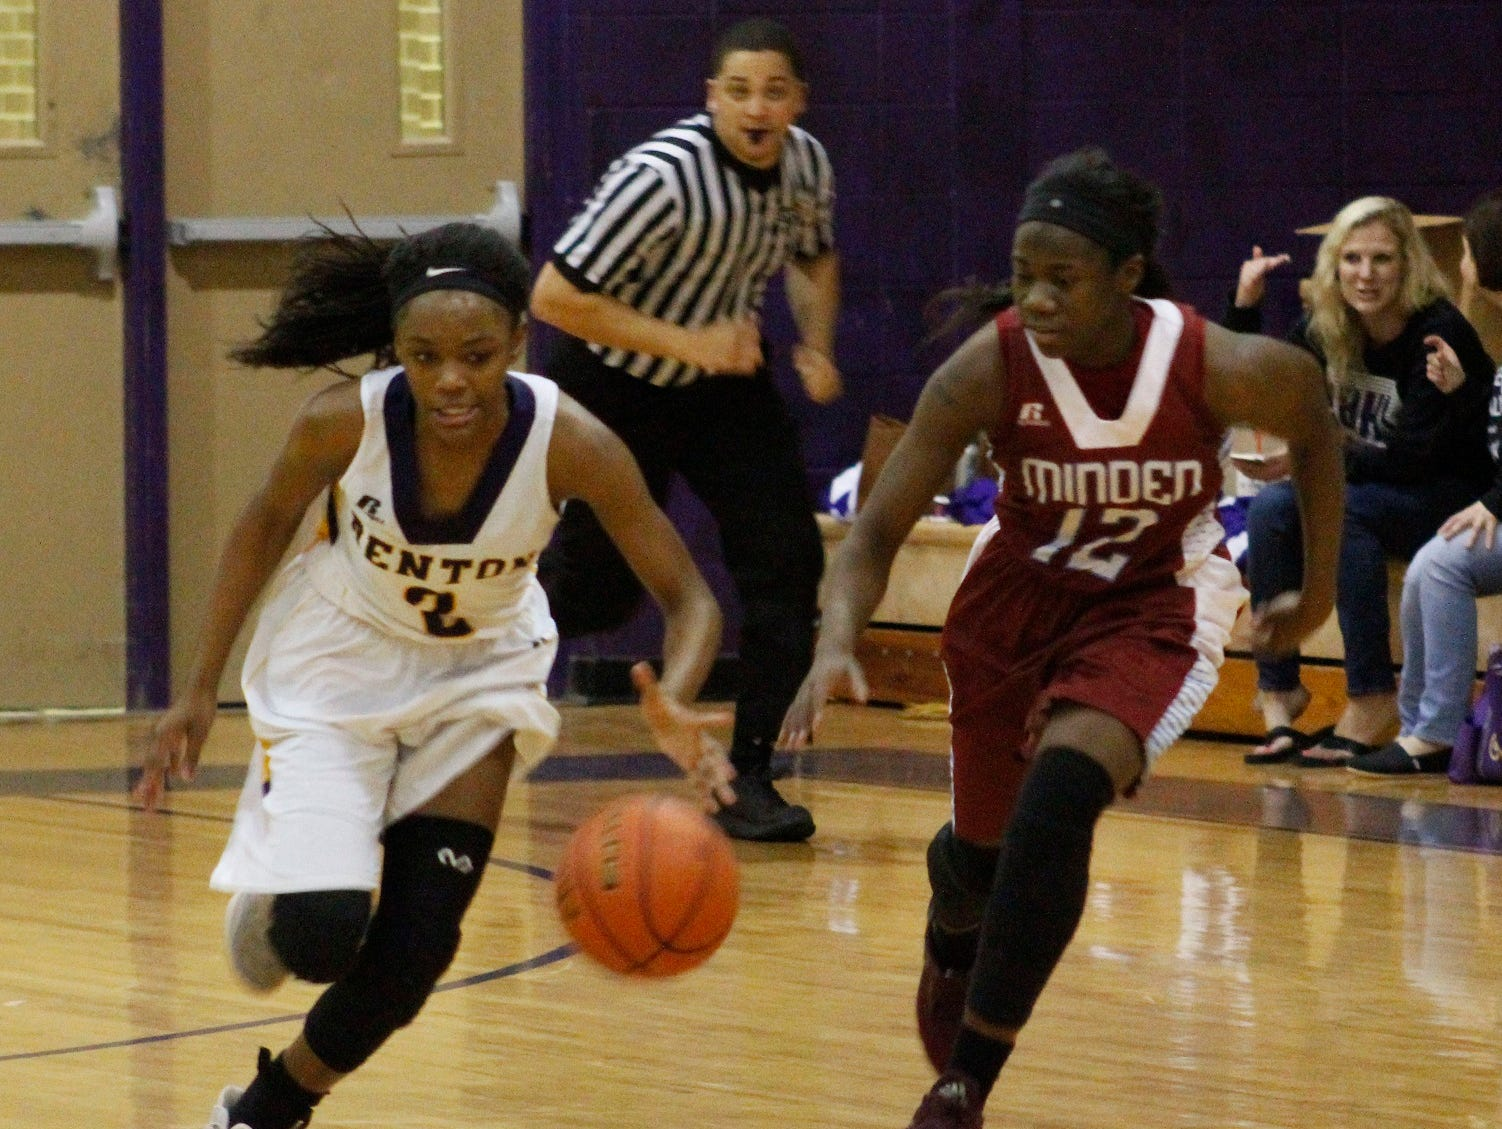 Minden's Bre Rogers (right) defends against Benton's Qua Chambers during Friday's game at Benton.